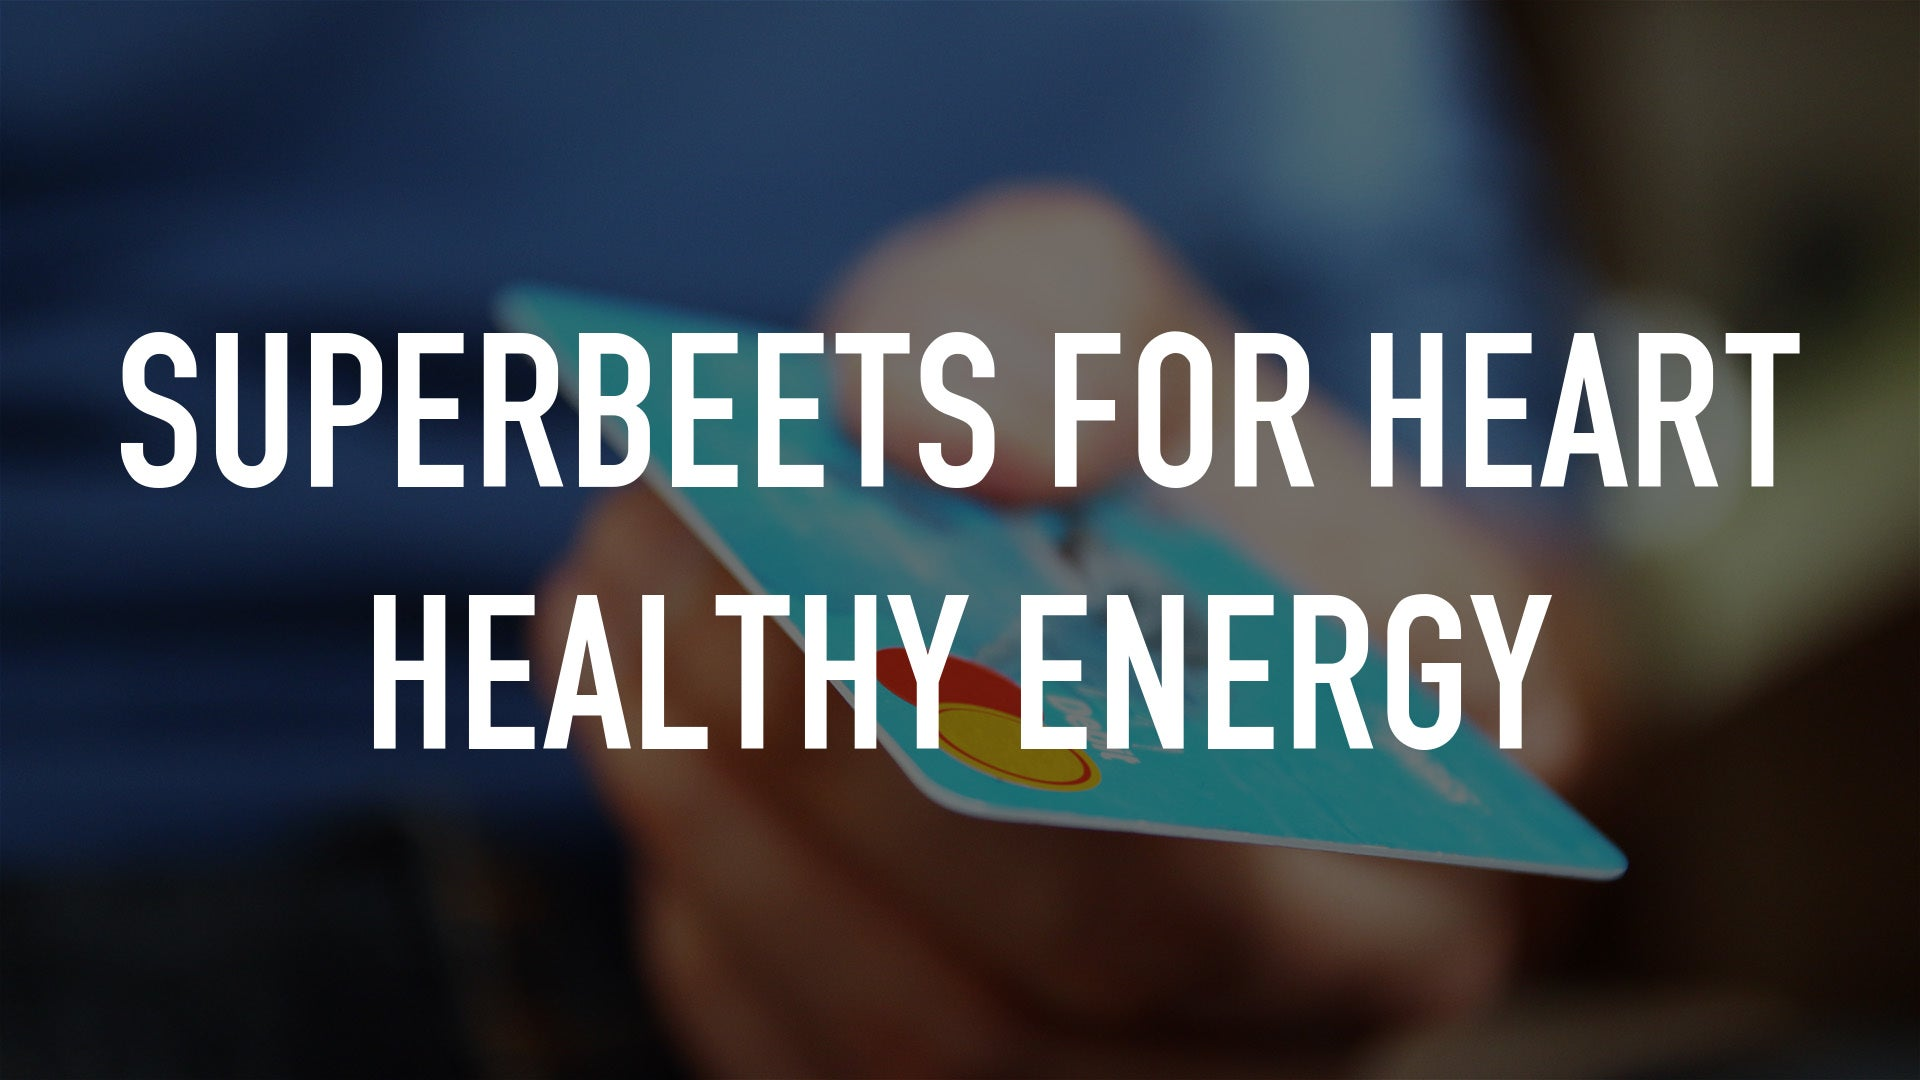 SuperBeets for heart healthy energy